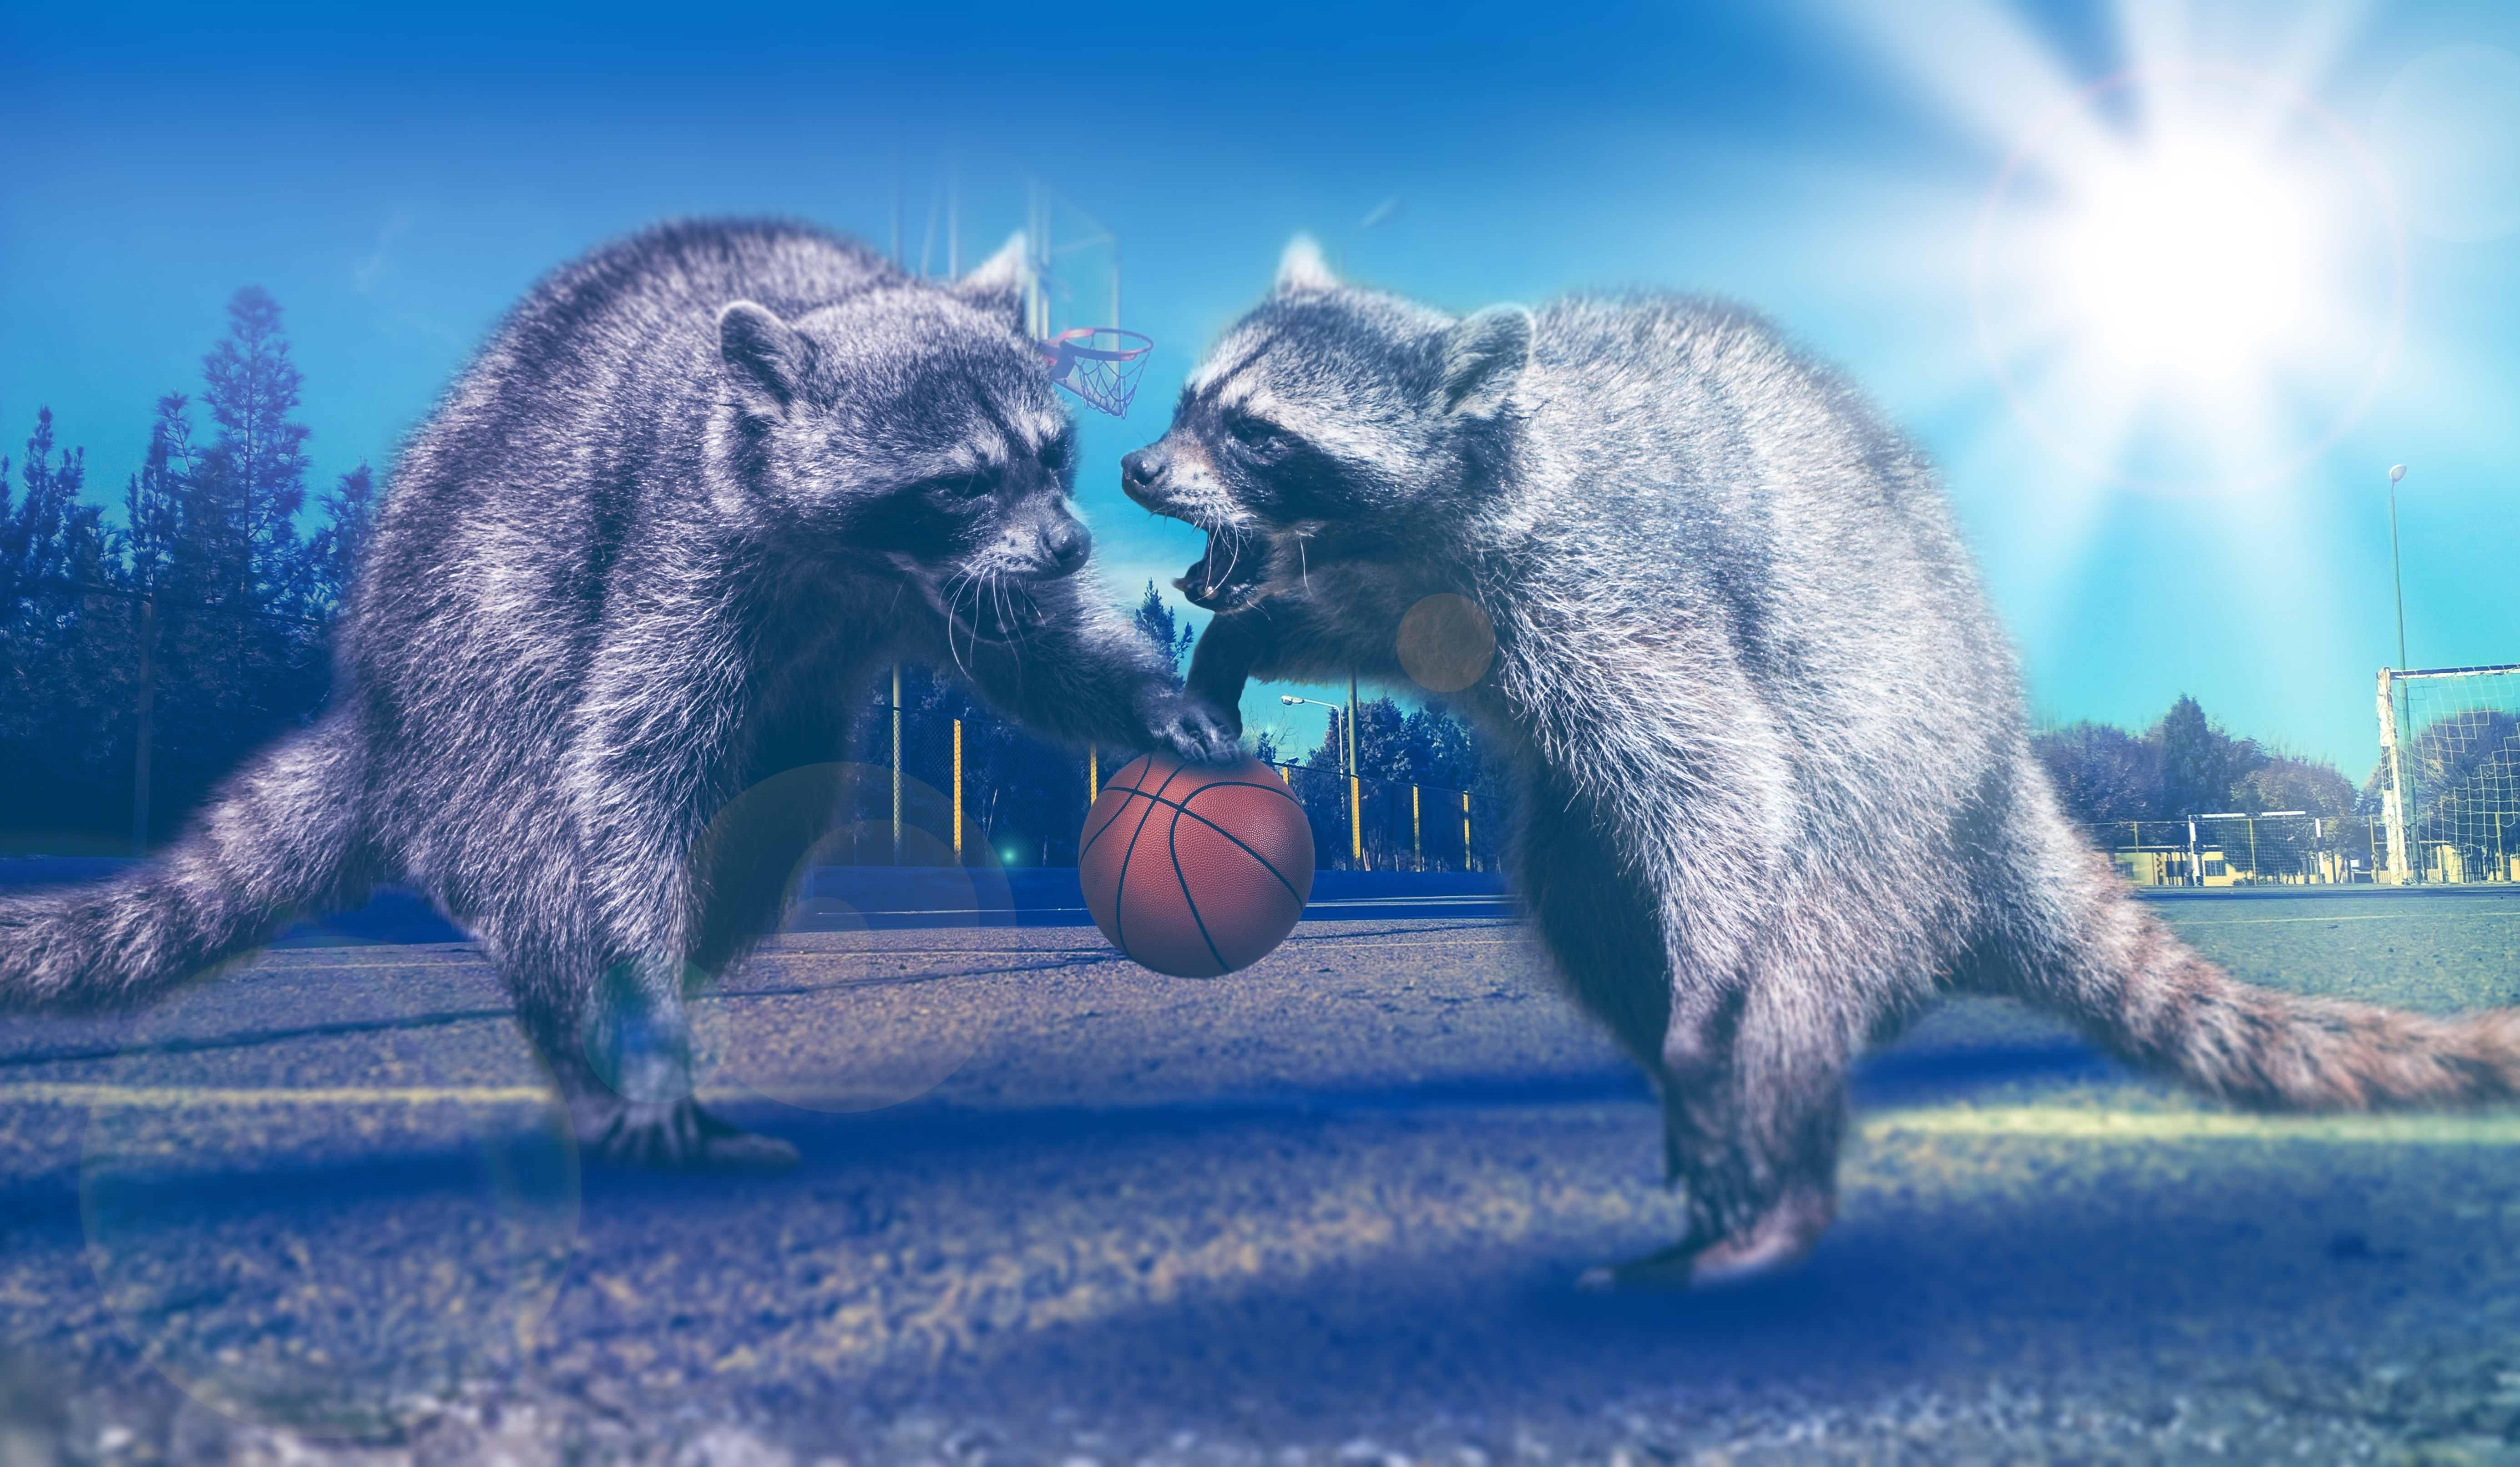 54489 download wallpaper Animals, Basketball, Raccoons, Photoshop screensavers and pictures for free